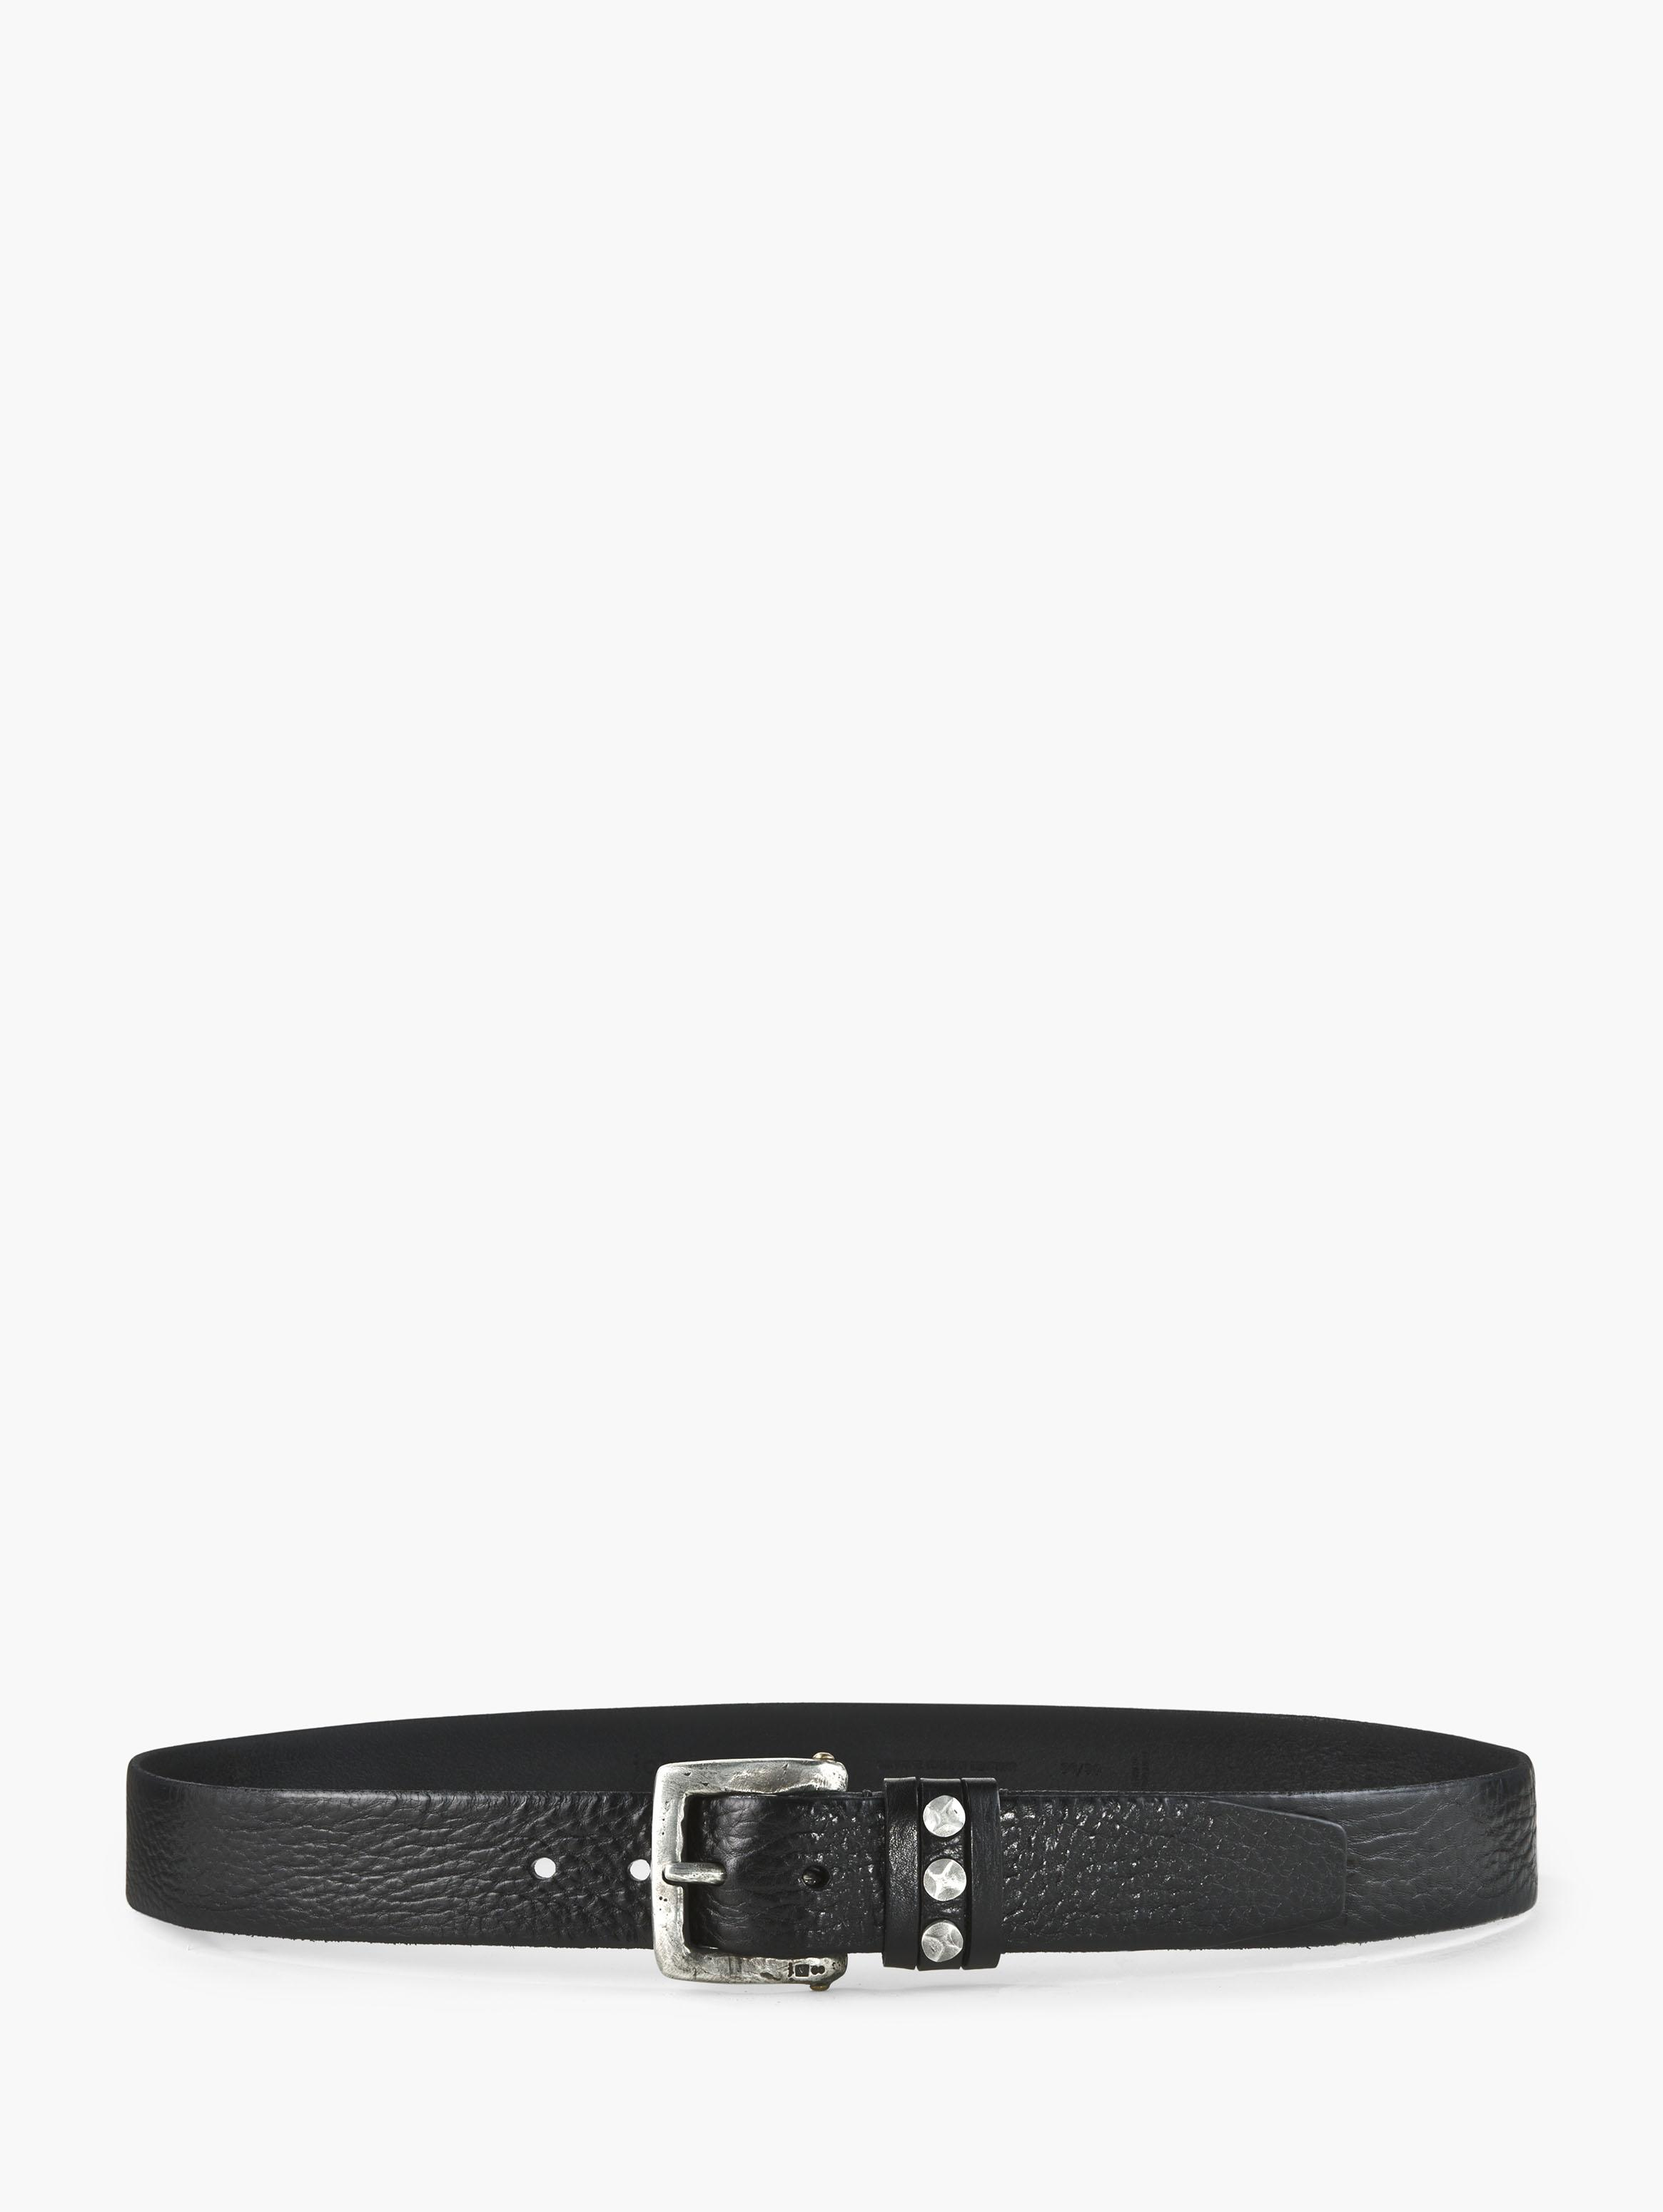 Pewter Studded Leather Belt